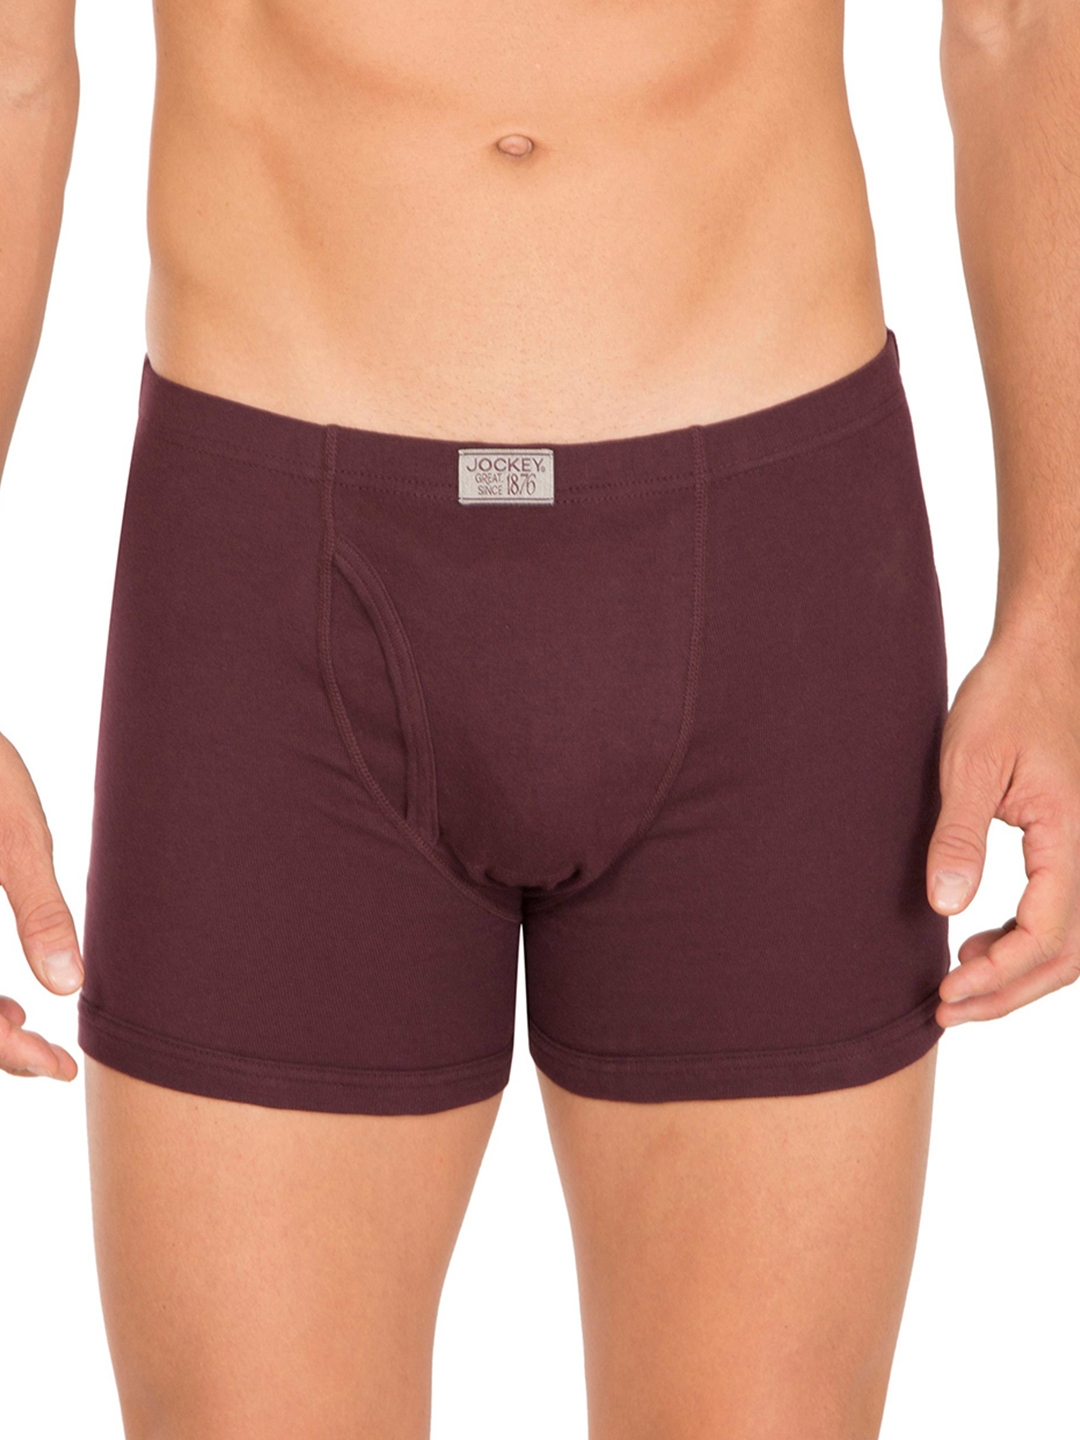 Jockey Men Burgundy Solid Trunks 8008 0105